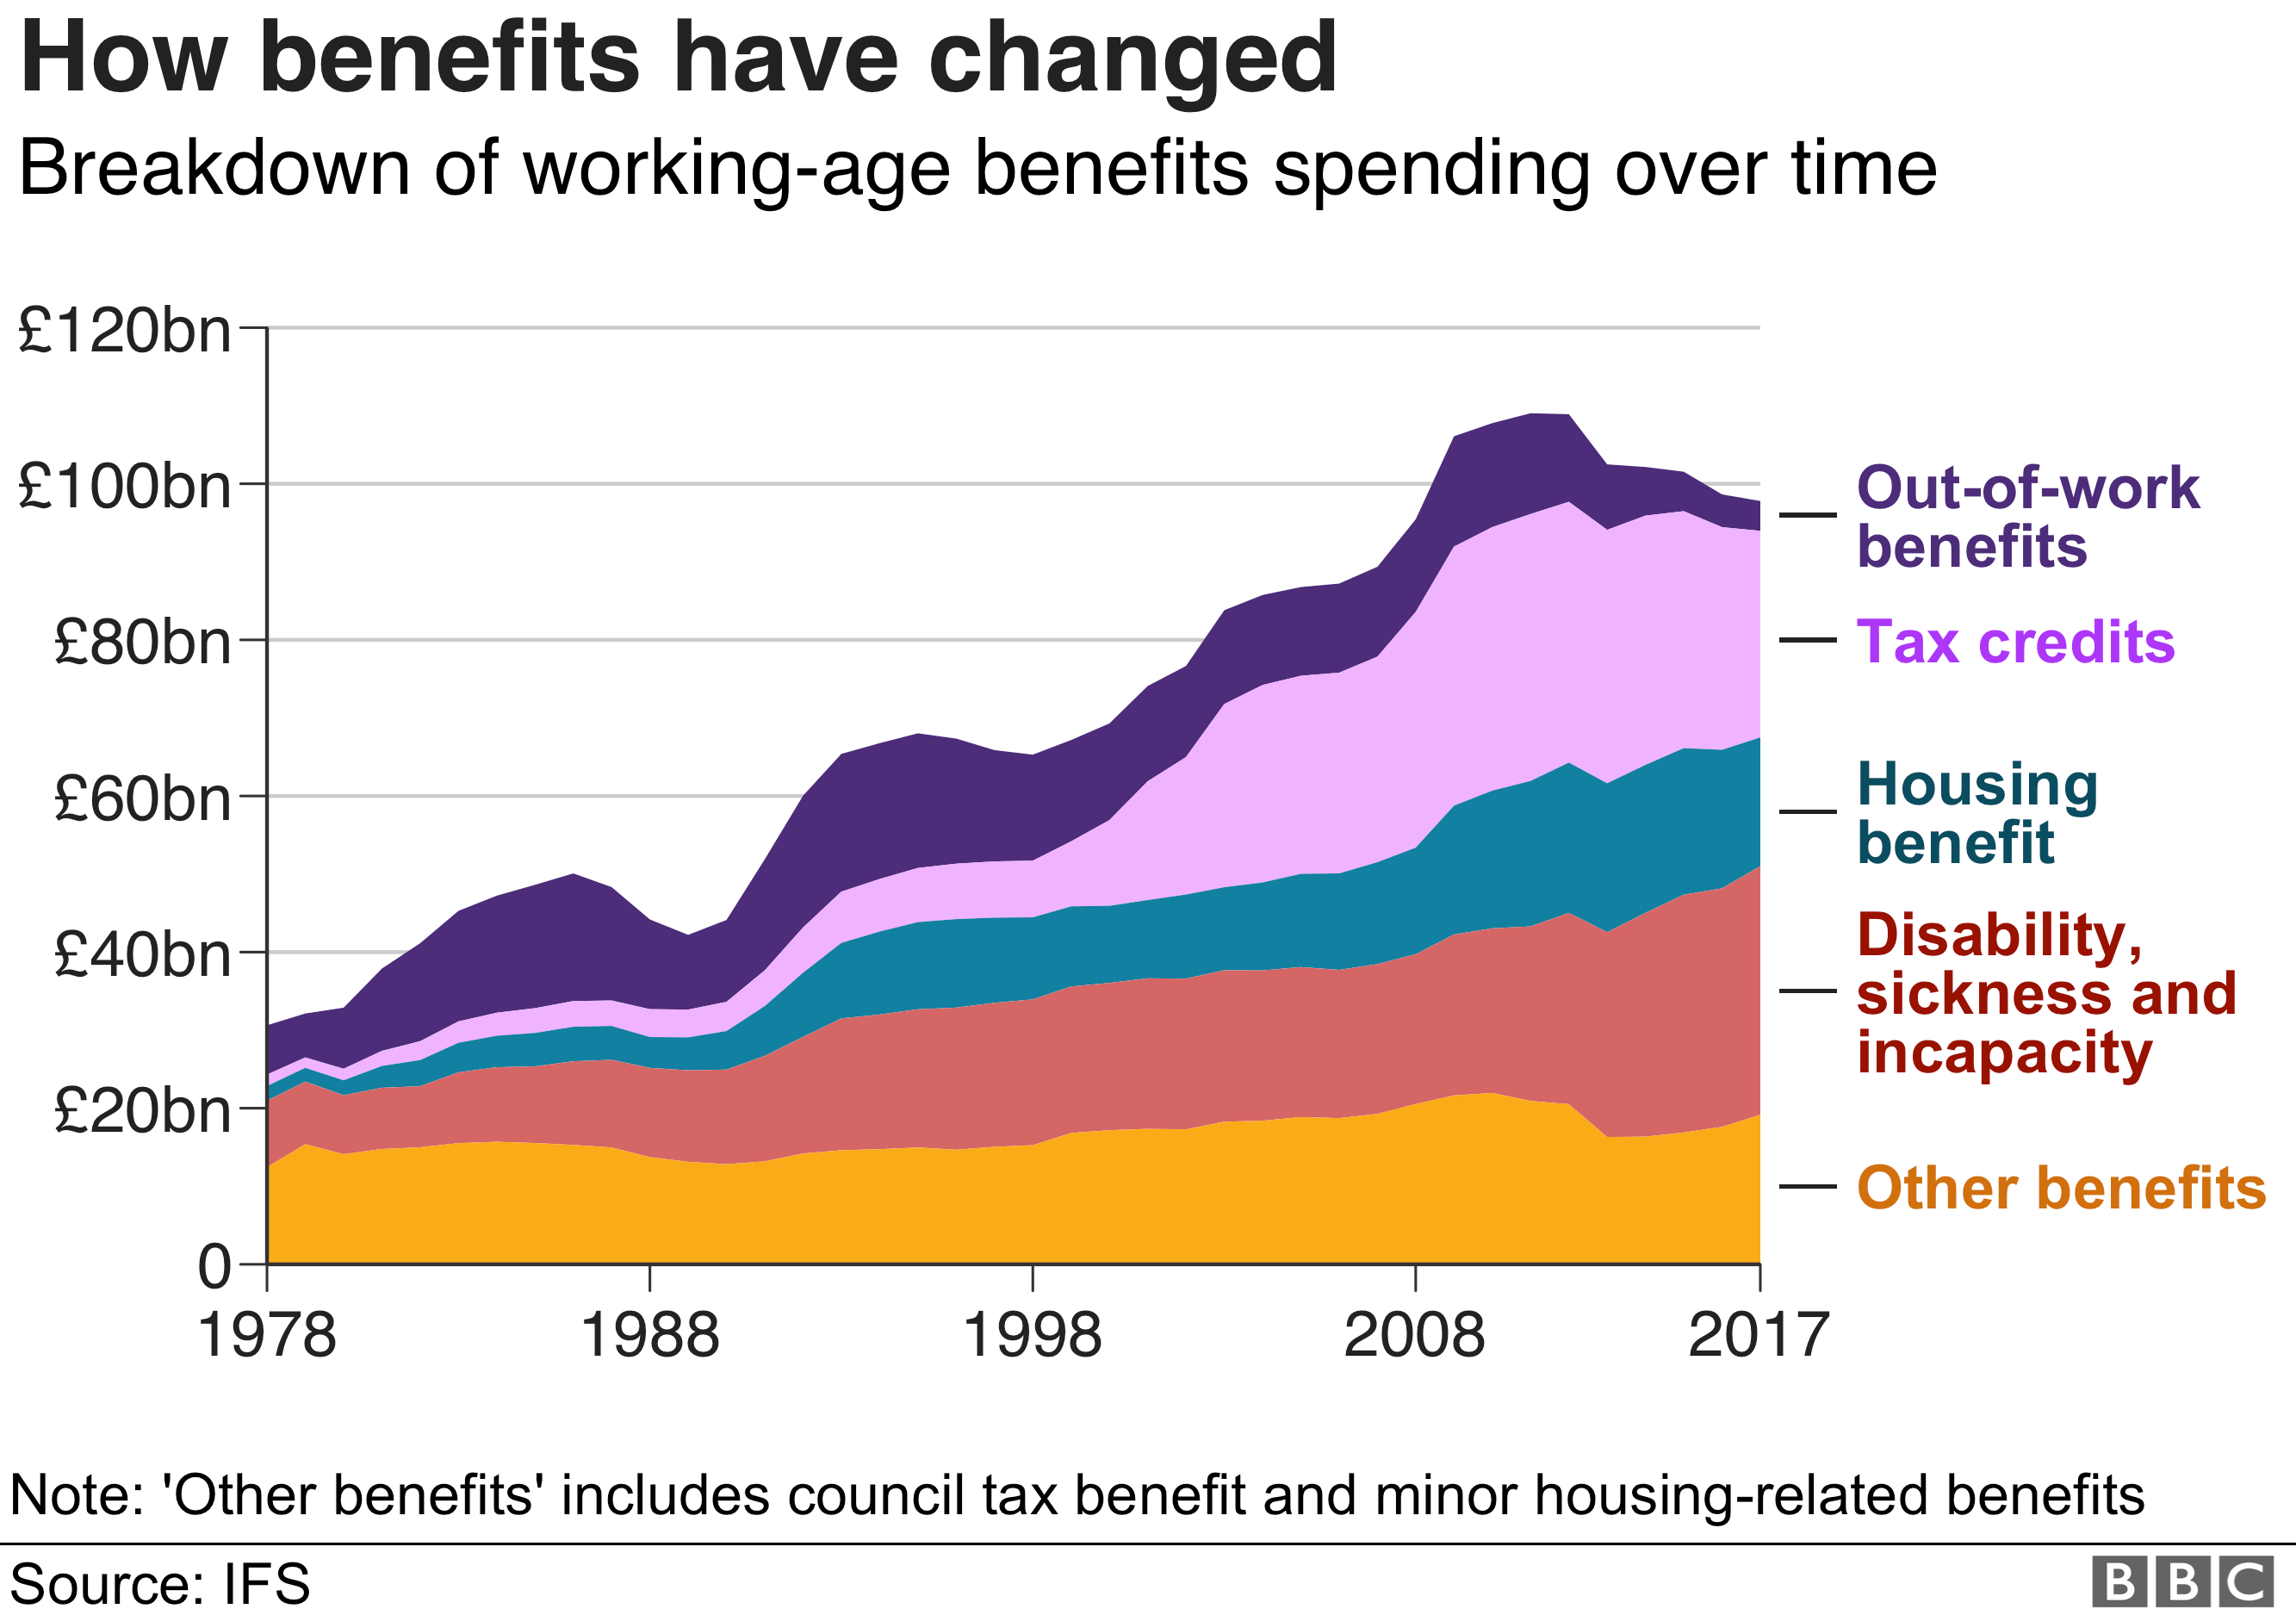 How benefits have changed over time